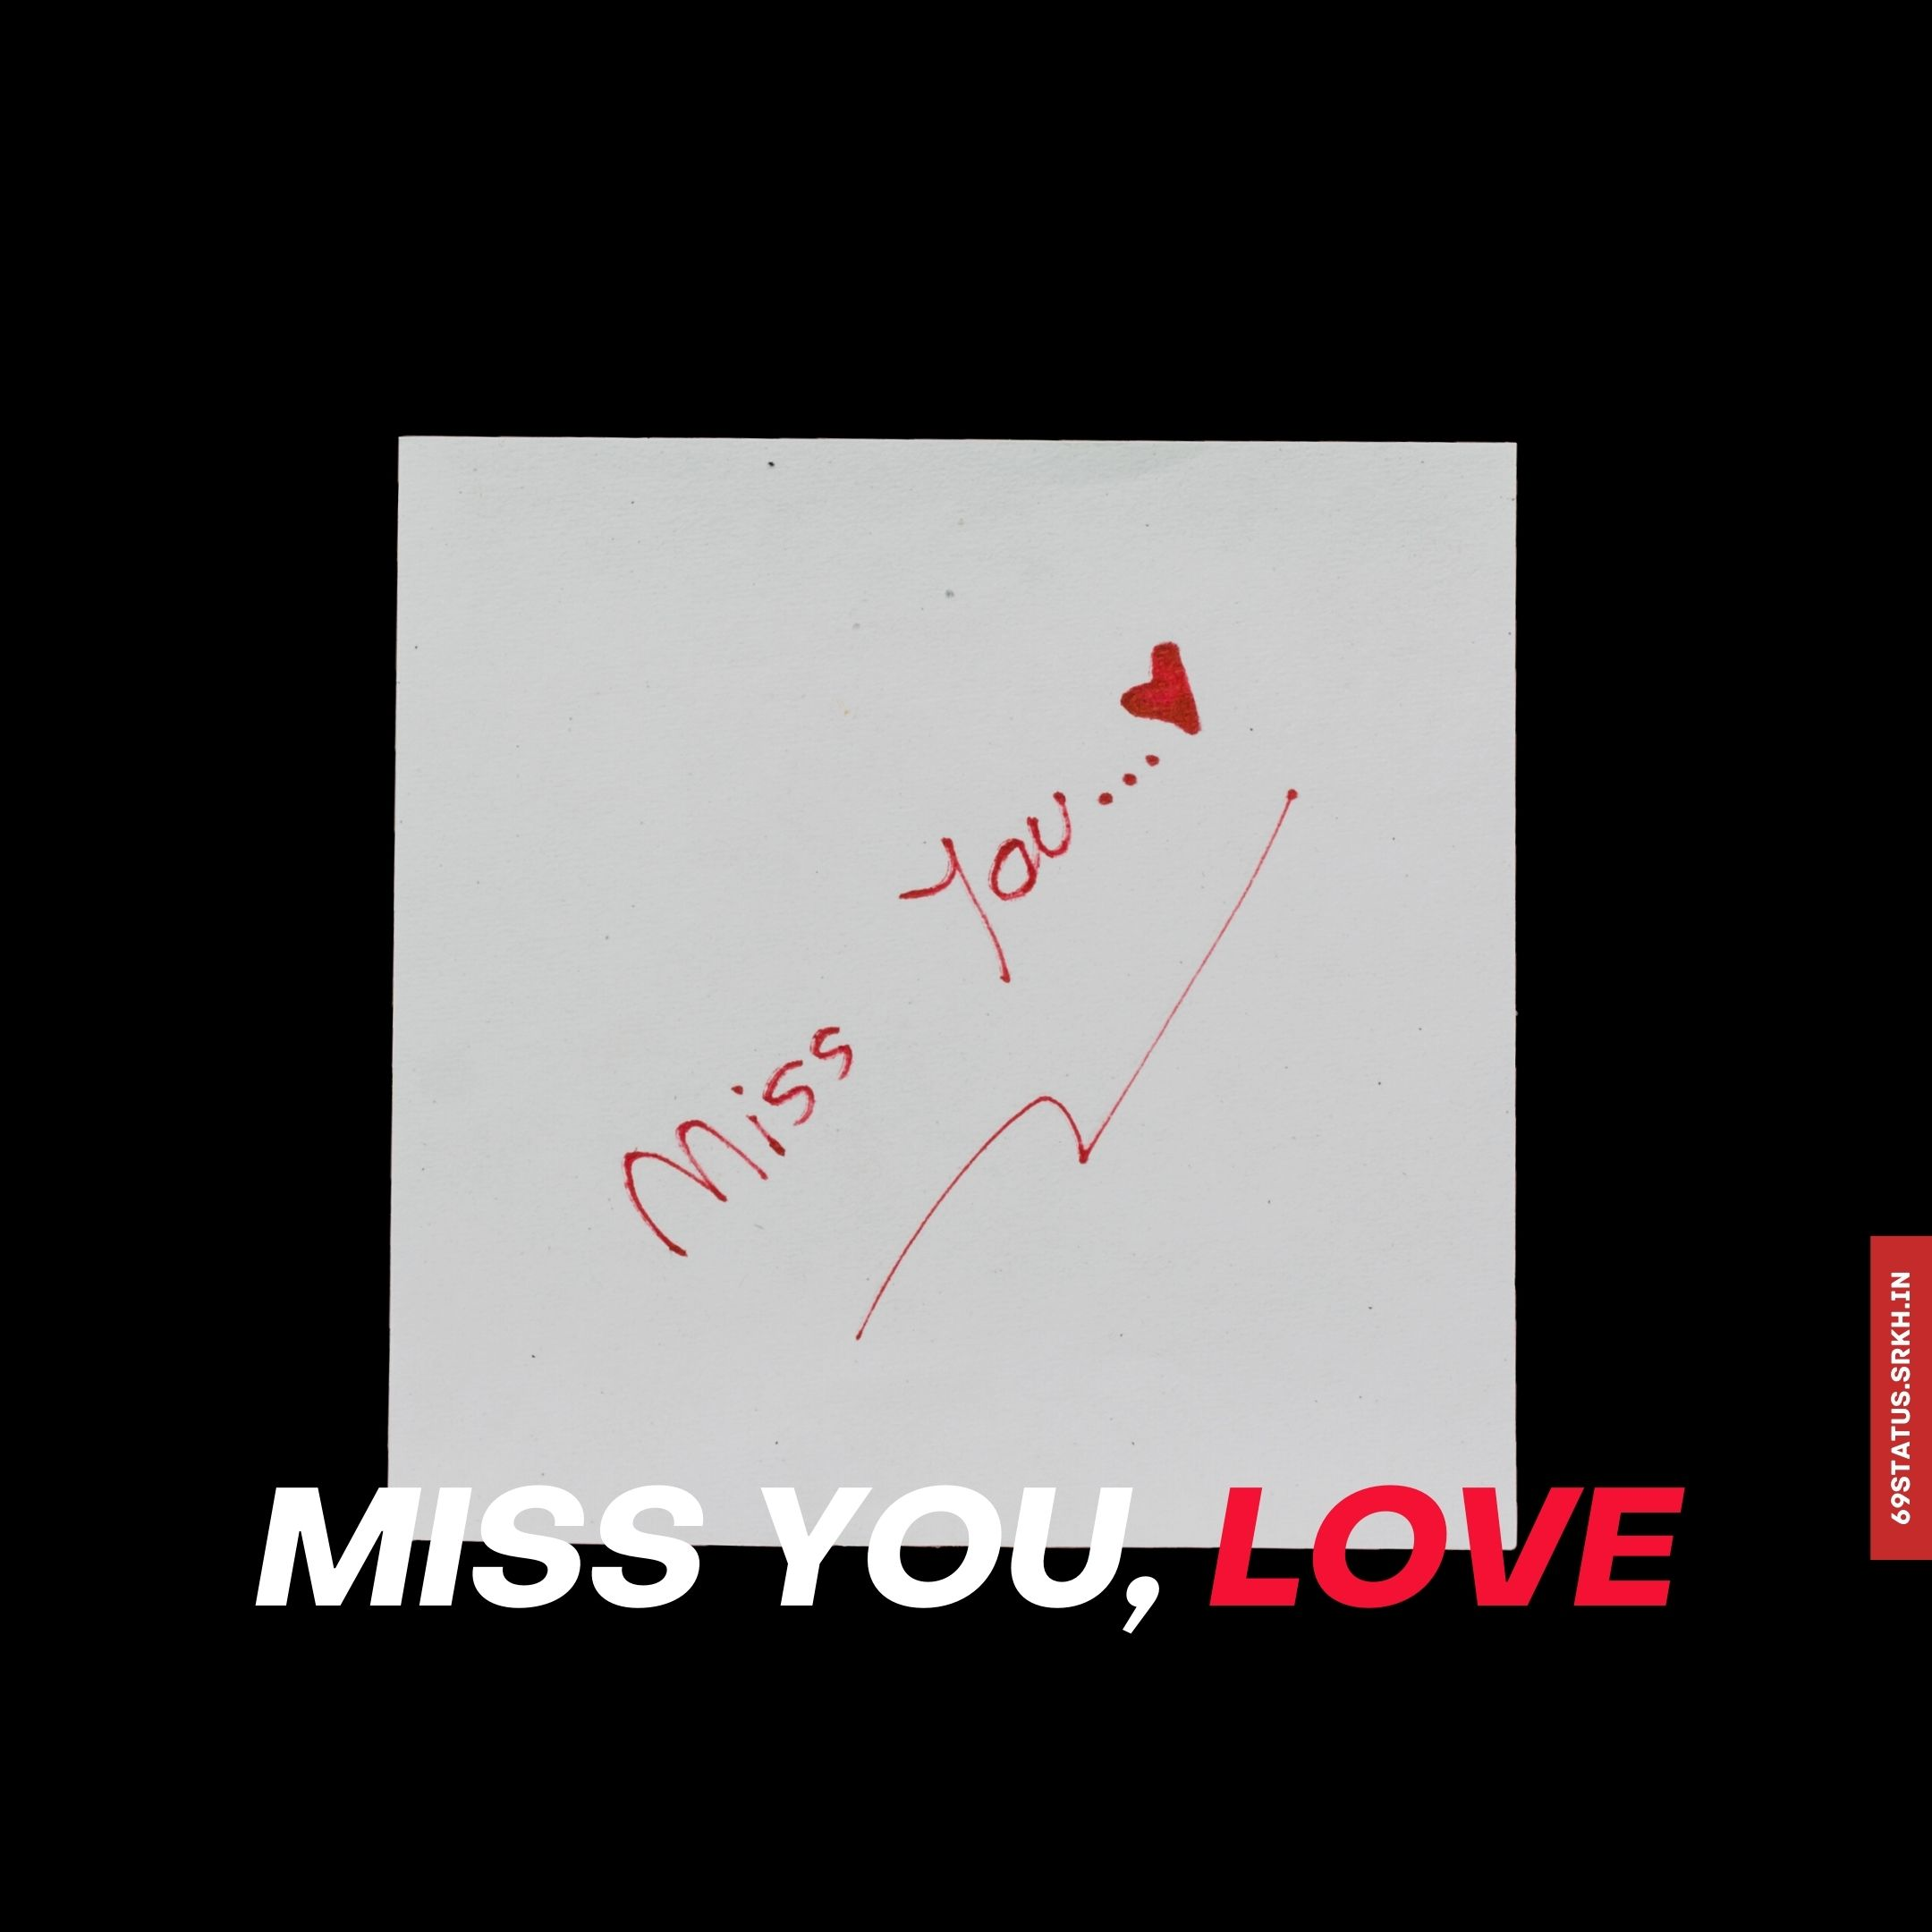 Miss you love images full HD free download.